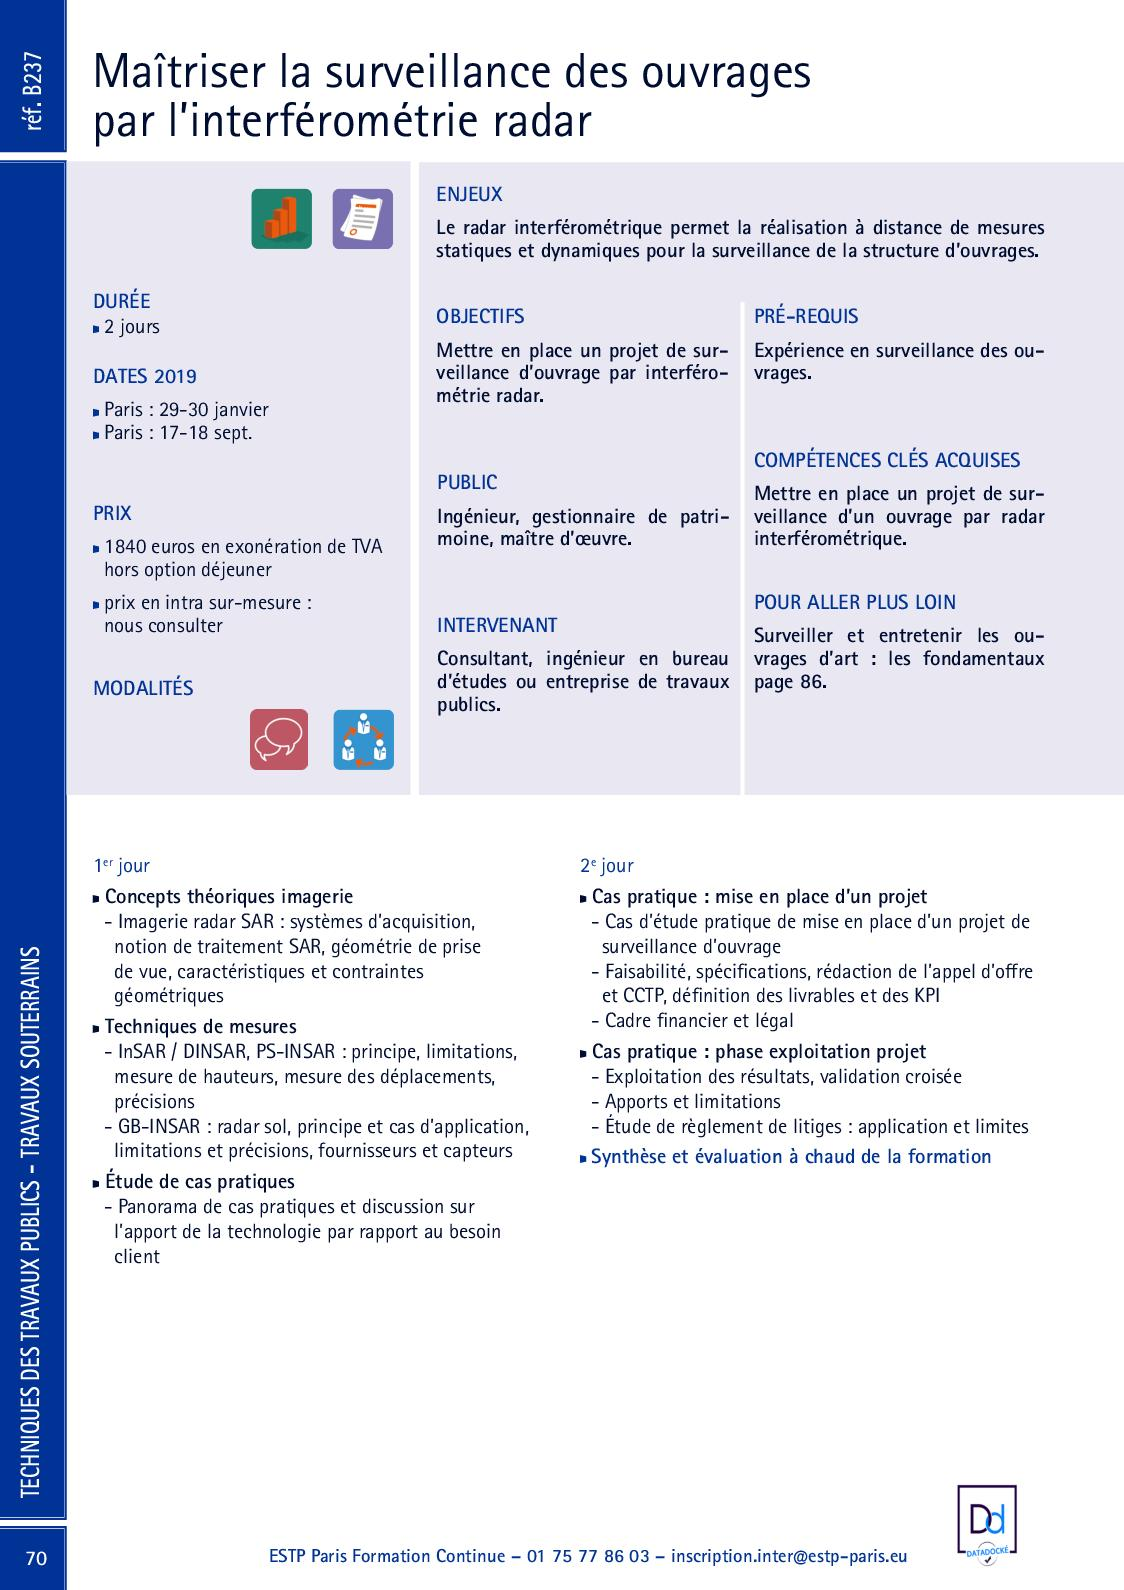 Bureau Etude Structure Paris estp paris catalogue 2019 - calameo downloader